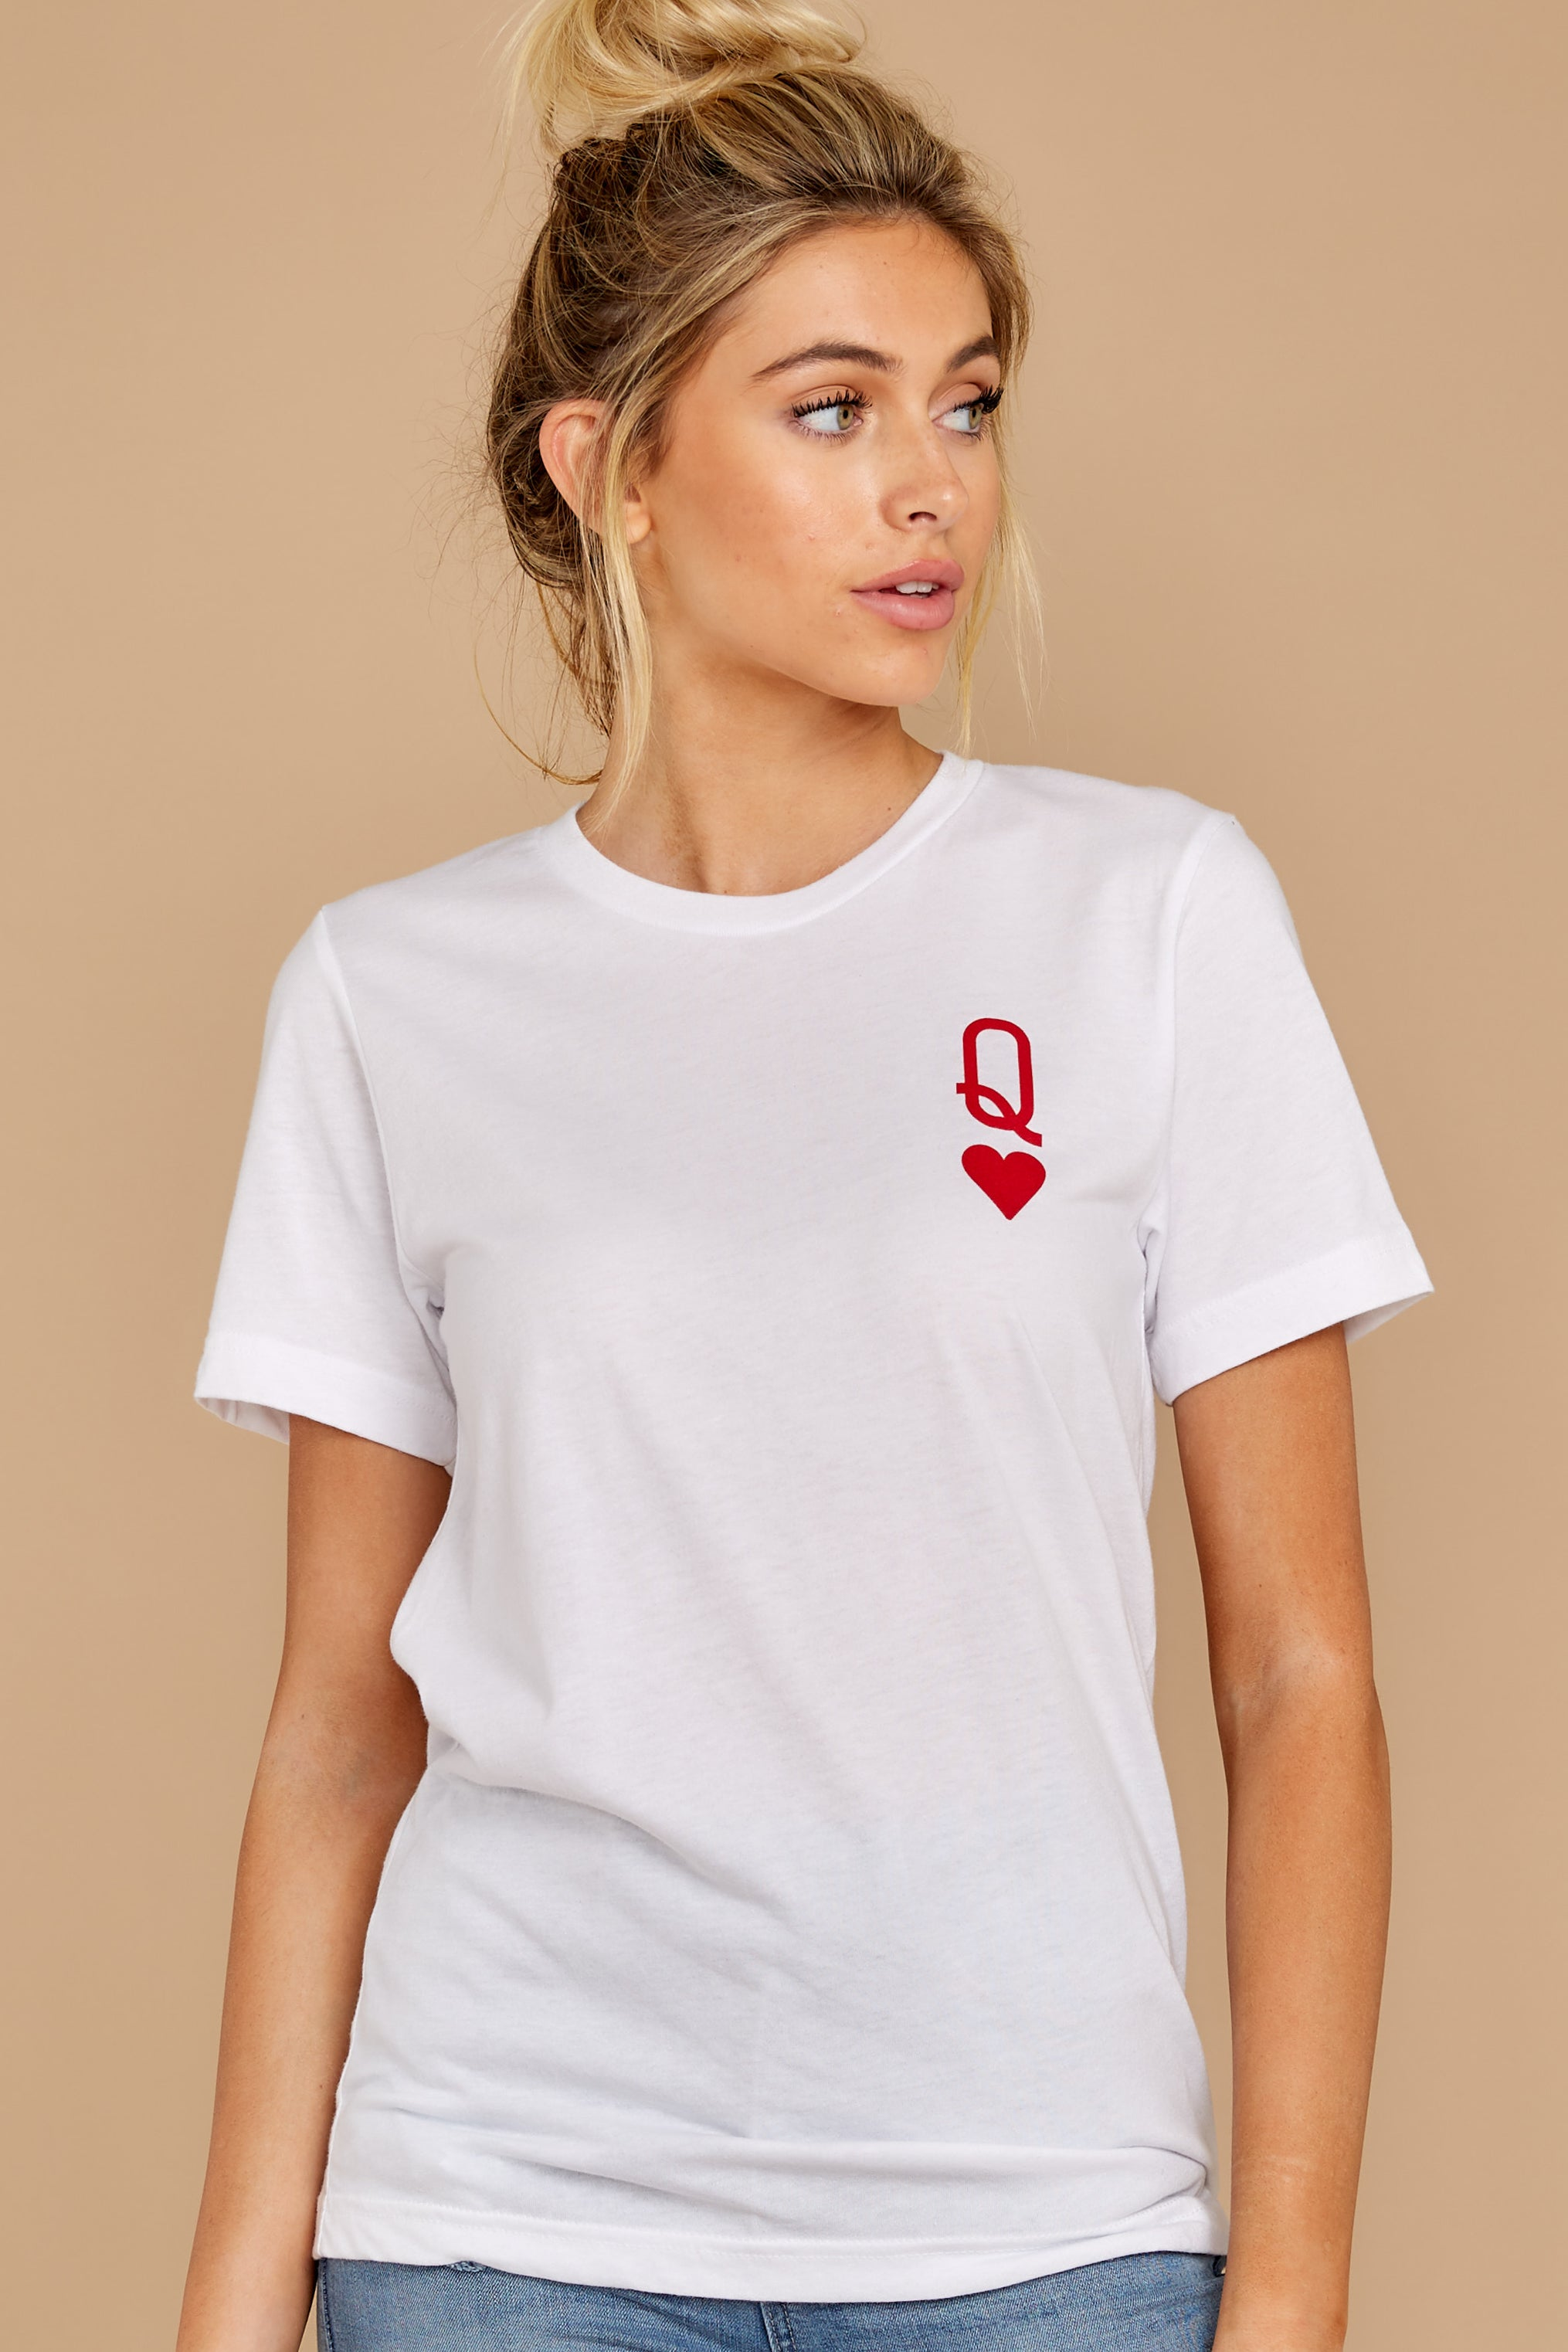 6 Queen Of Hearts White Graphic Tee at reddressboutique.com